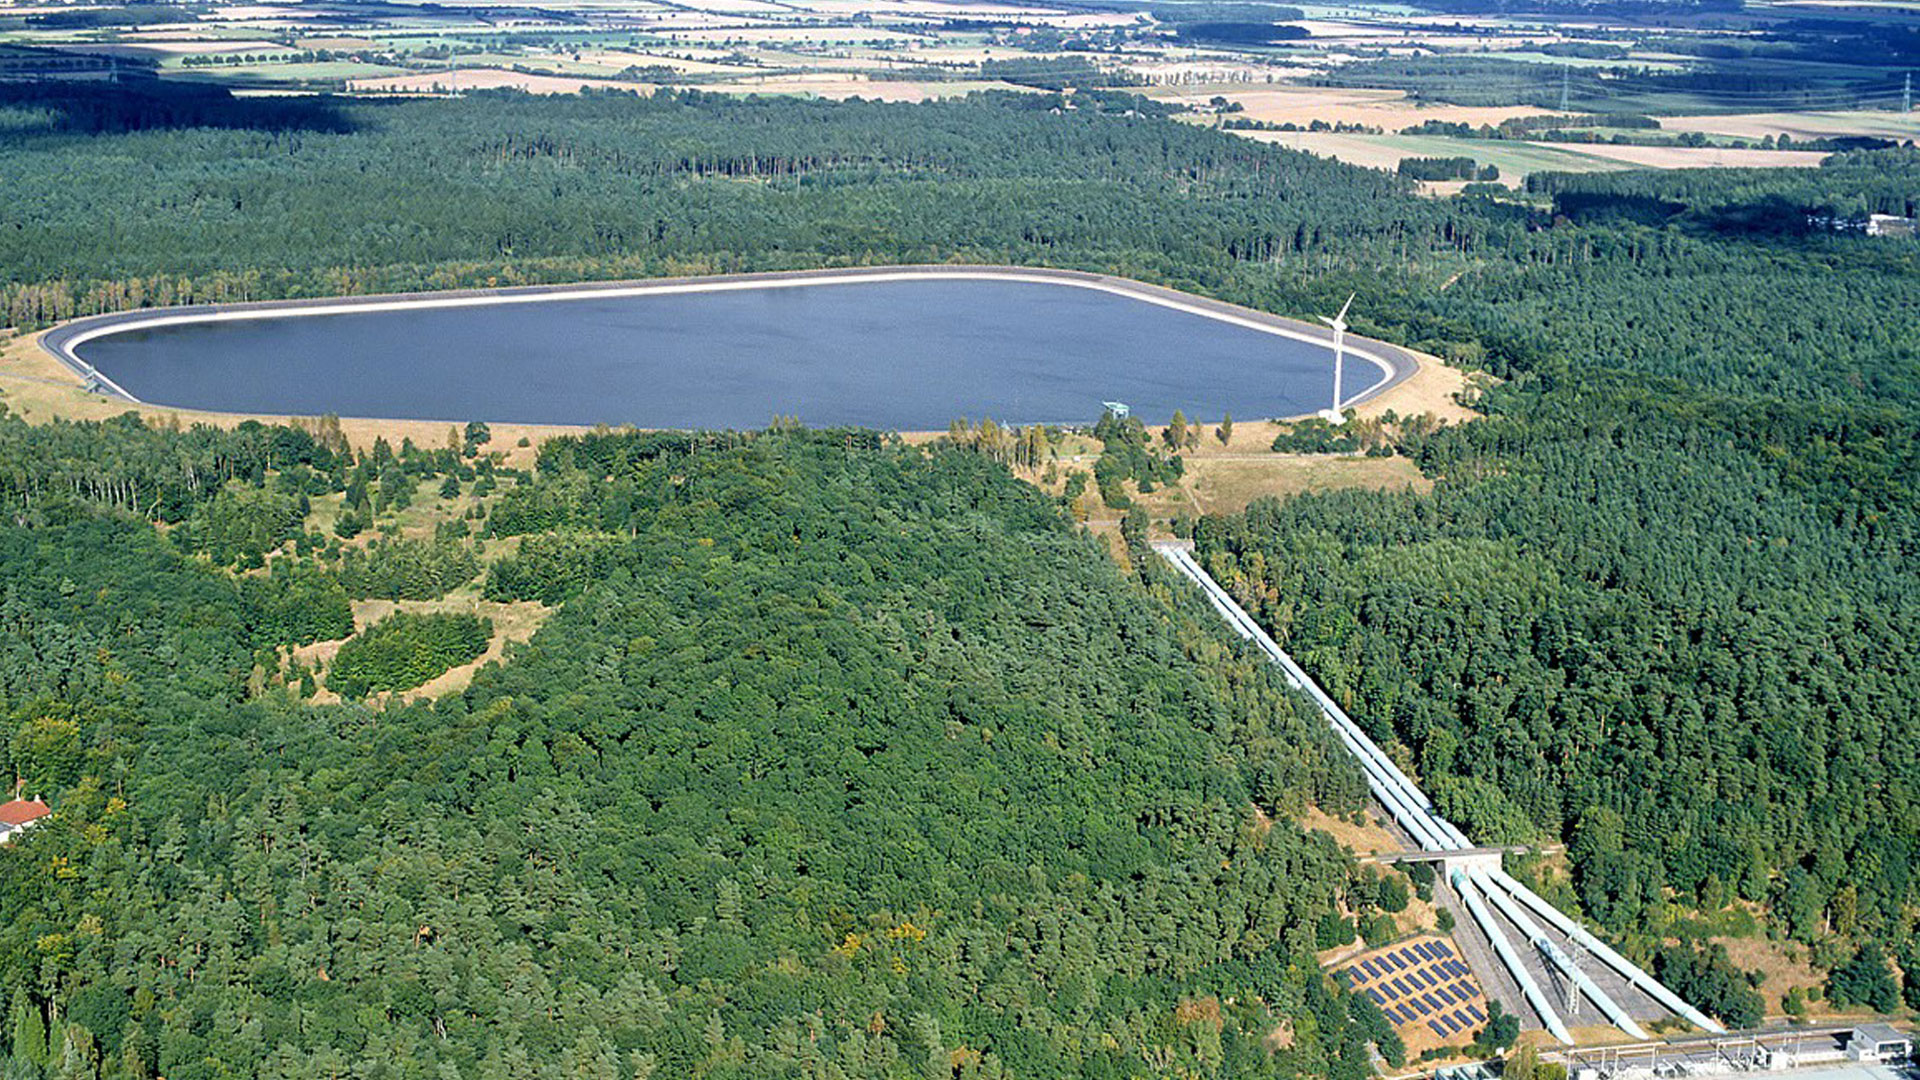 Geesthacht pumped storage plant